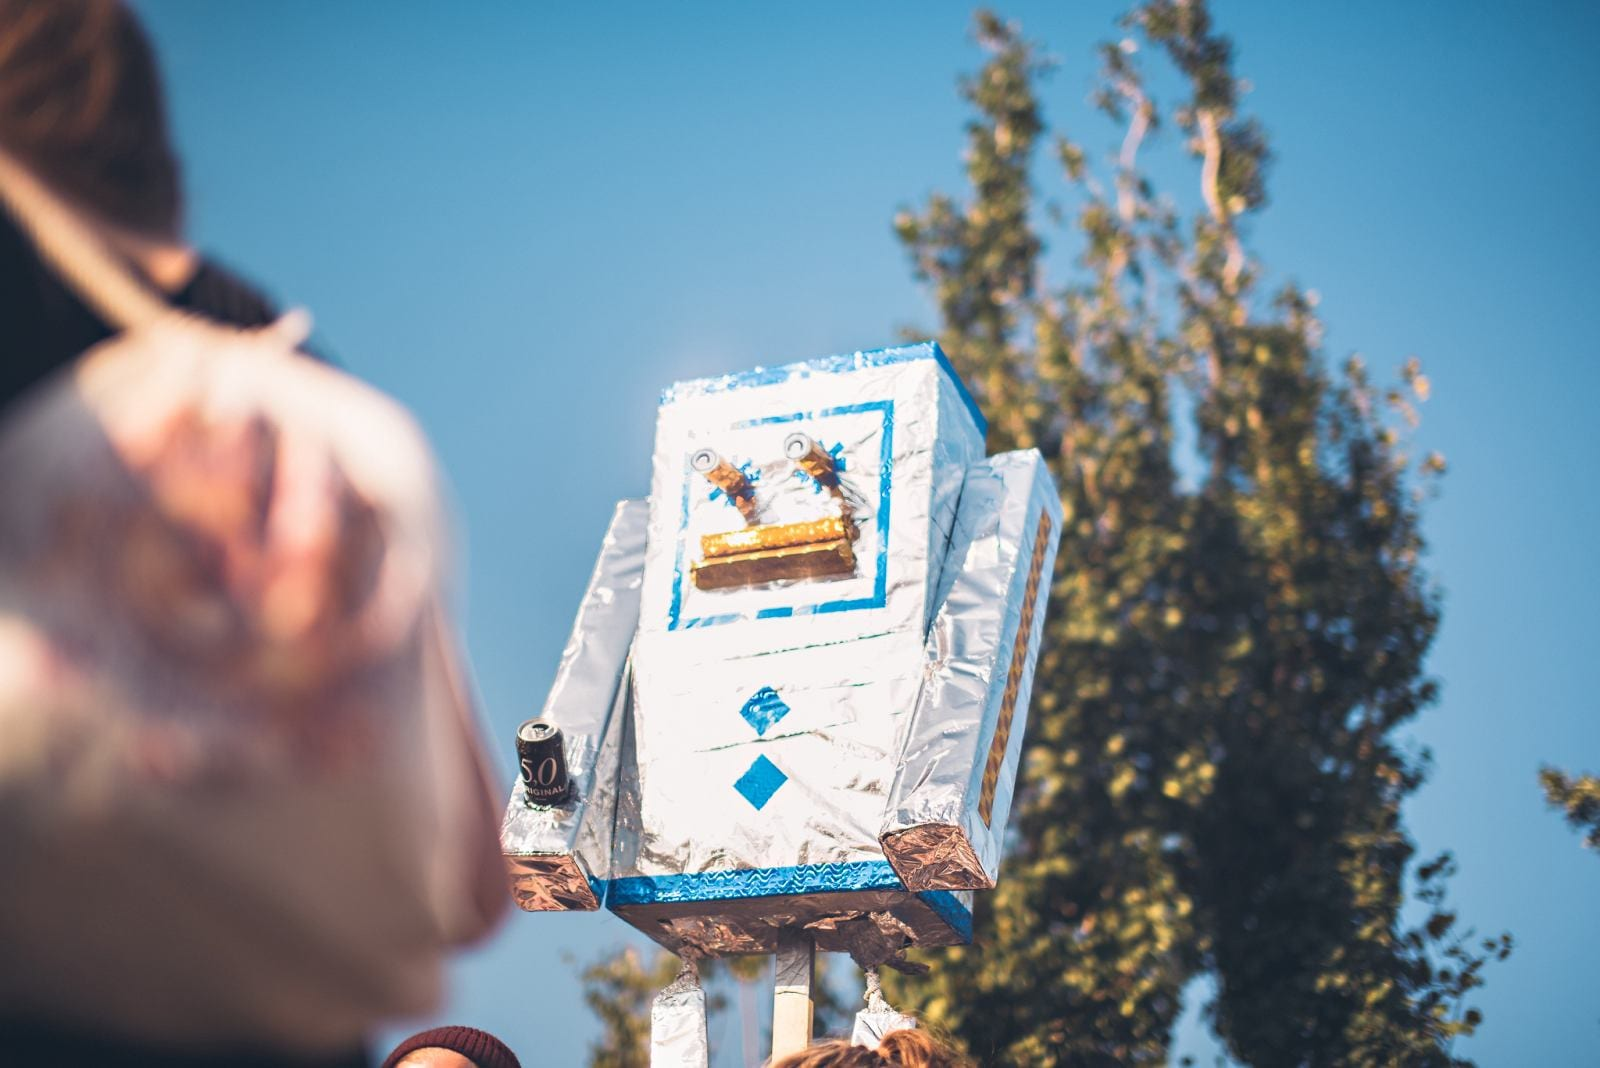 007 ms dockville 2015 roboter - MS Dockville 2015